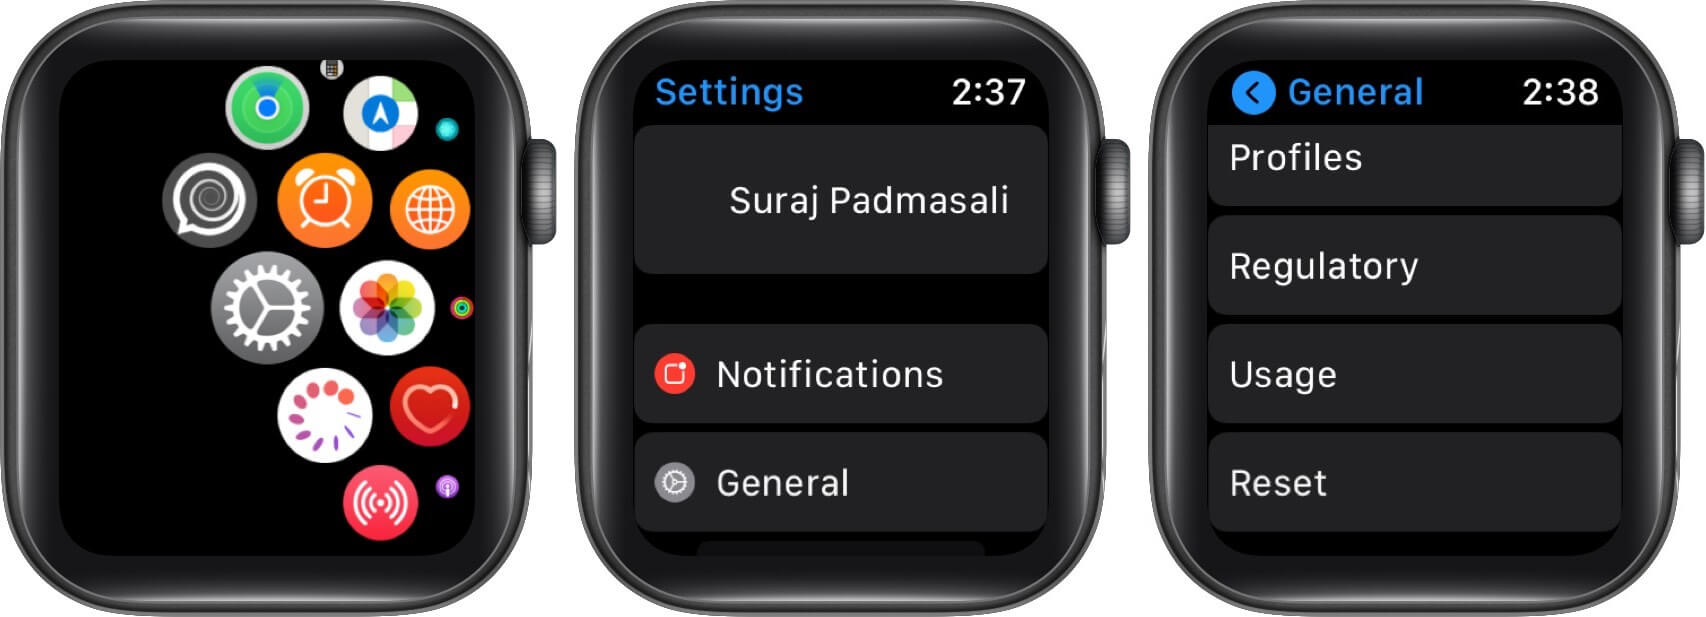 open settings tap on general then tap on reset on apple watch